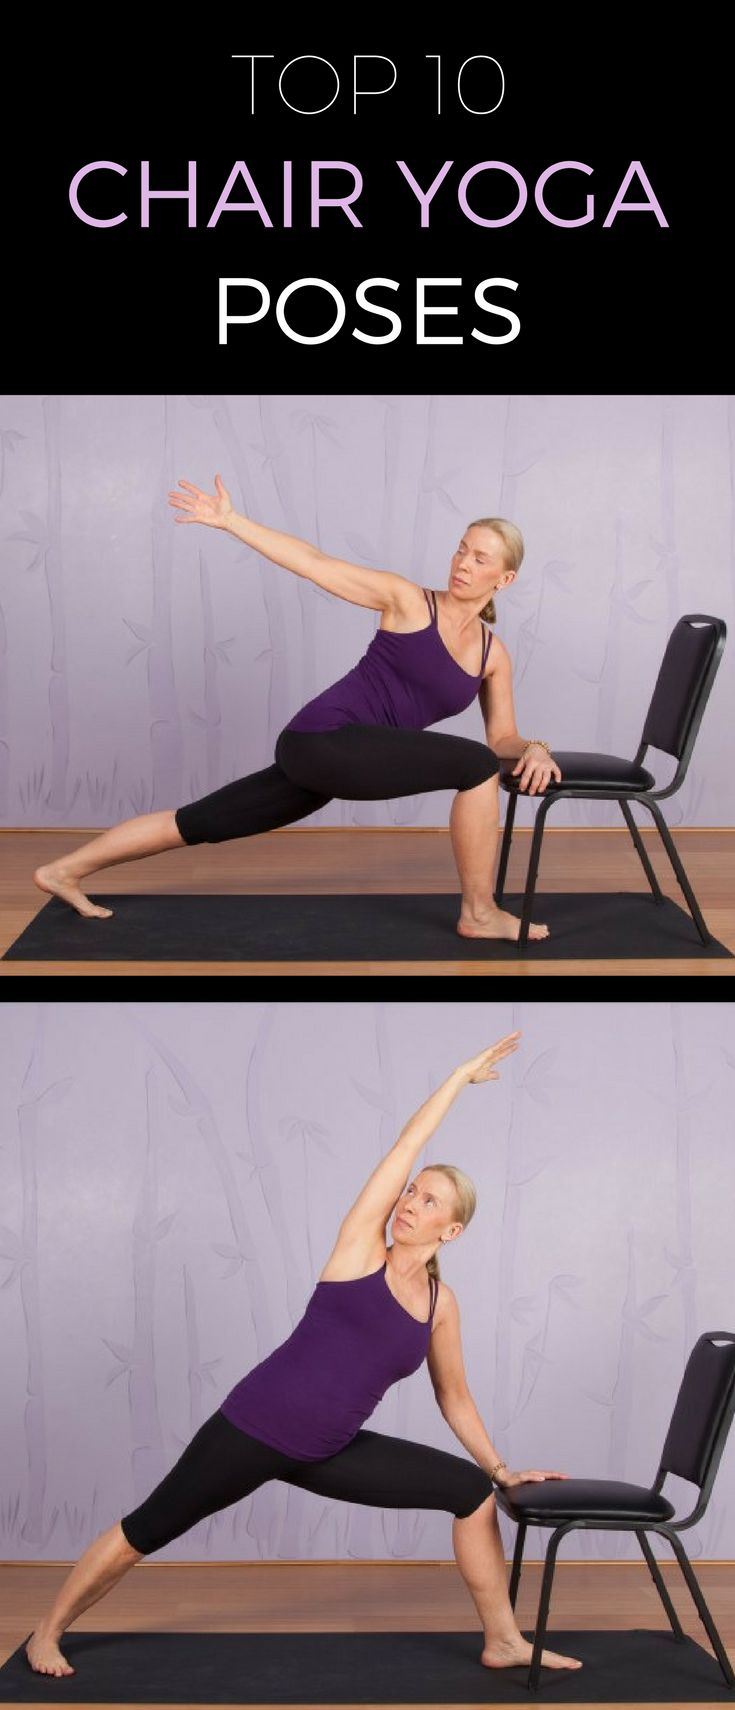 Printable chair yoga poses - Searching For The Perfect Low Impact Workout These Chair Yoga Poses Are For You